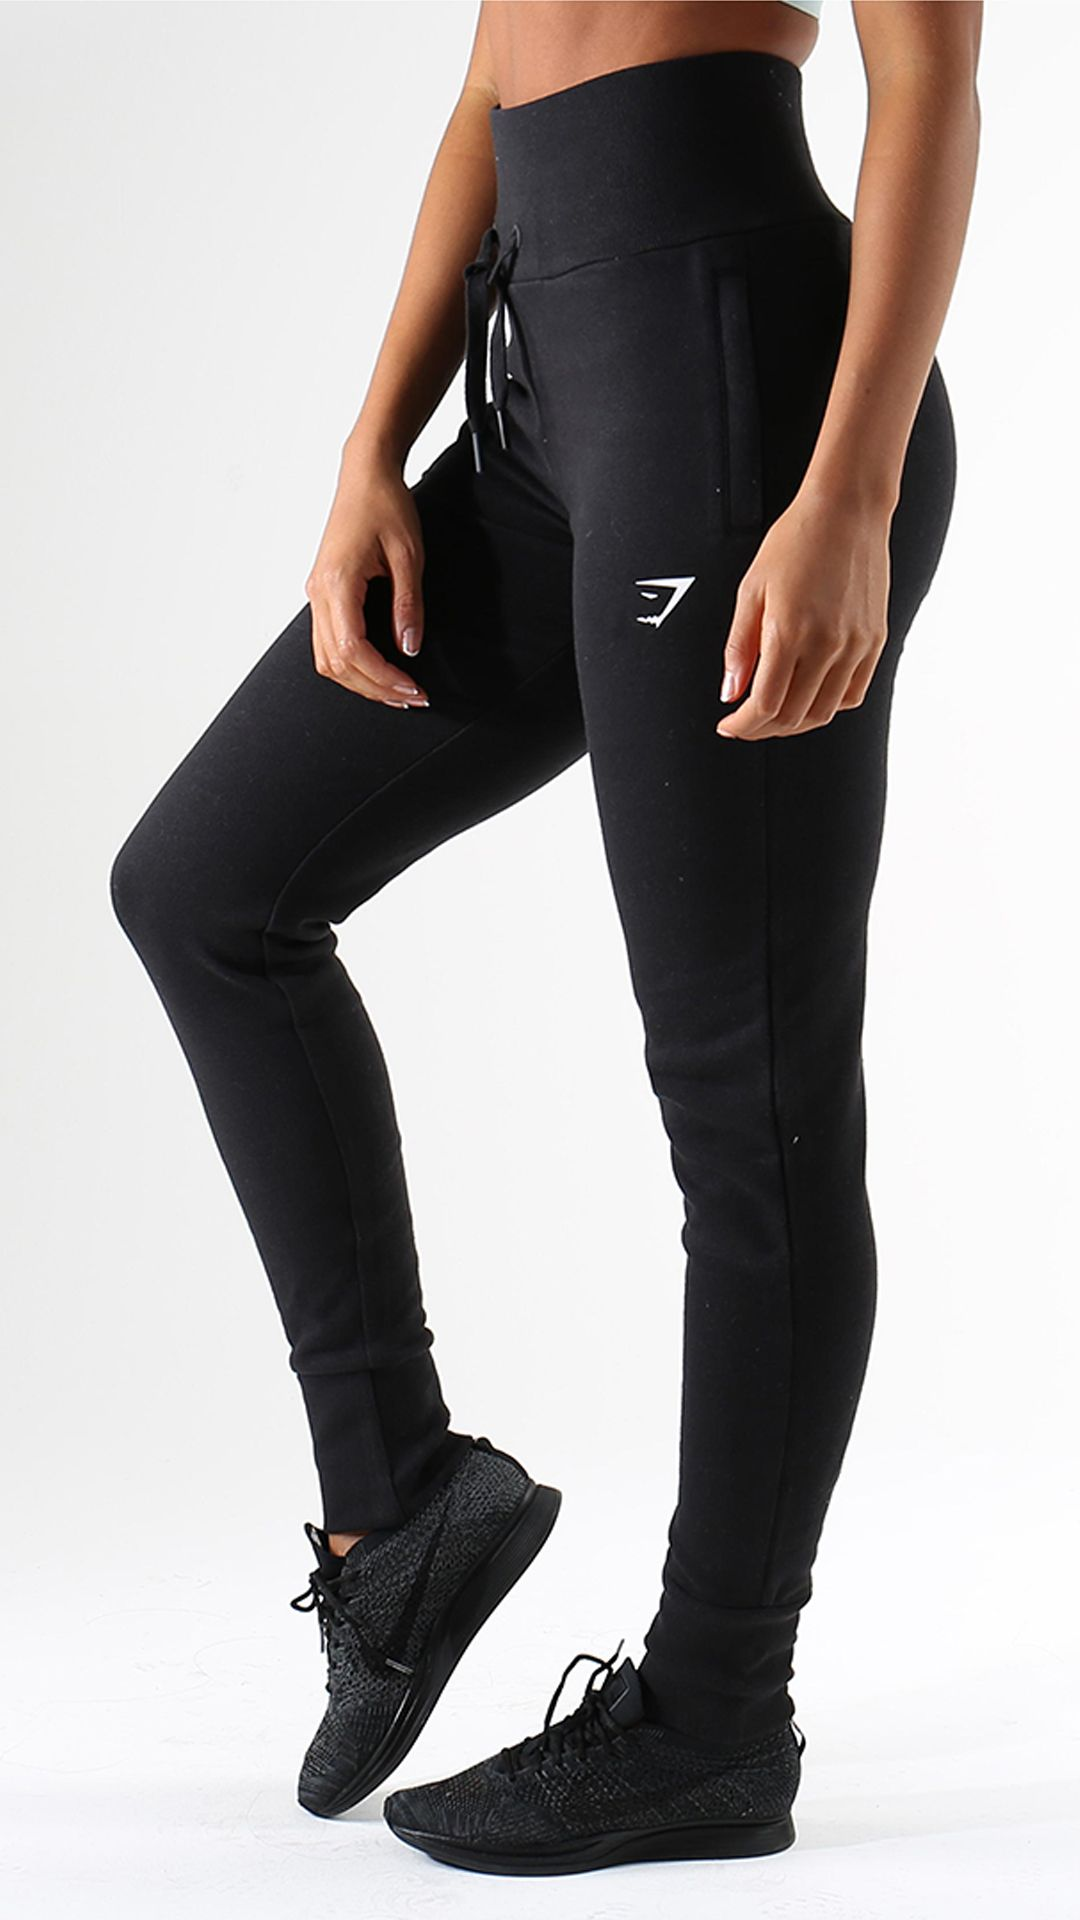 Get Luxurious Comfort From The High Waisted Joggers In Black Tailored For A High Waisted And Figure Hugging Fit Workout Attire Gym Attire Nike Outfits